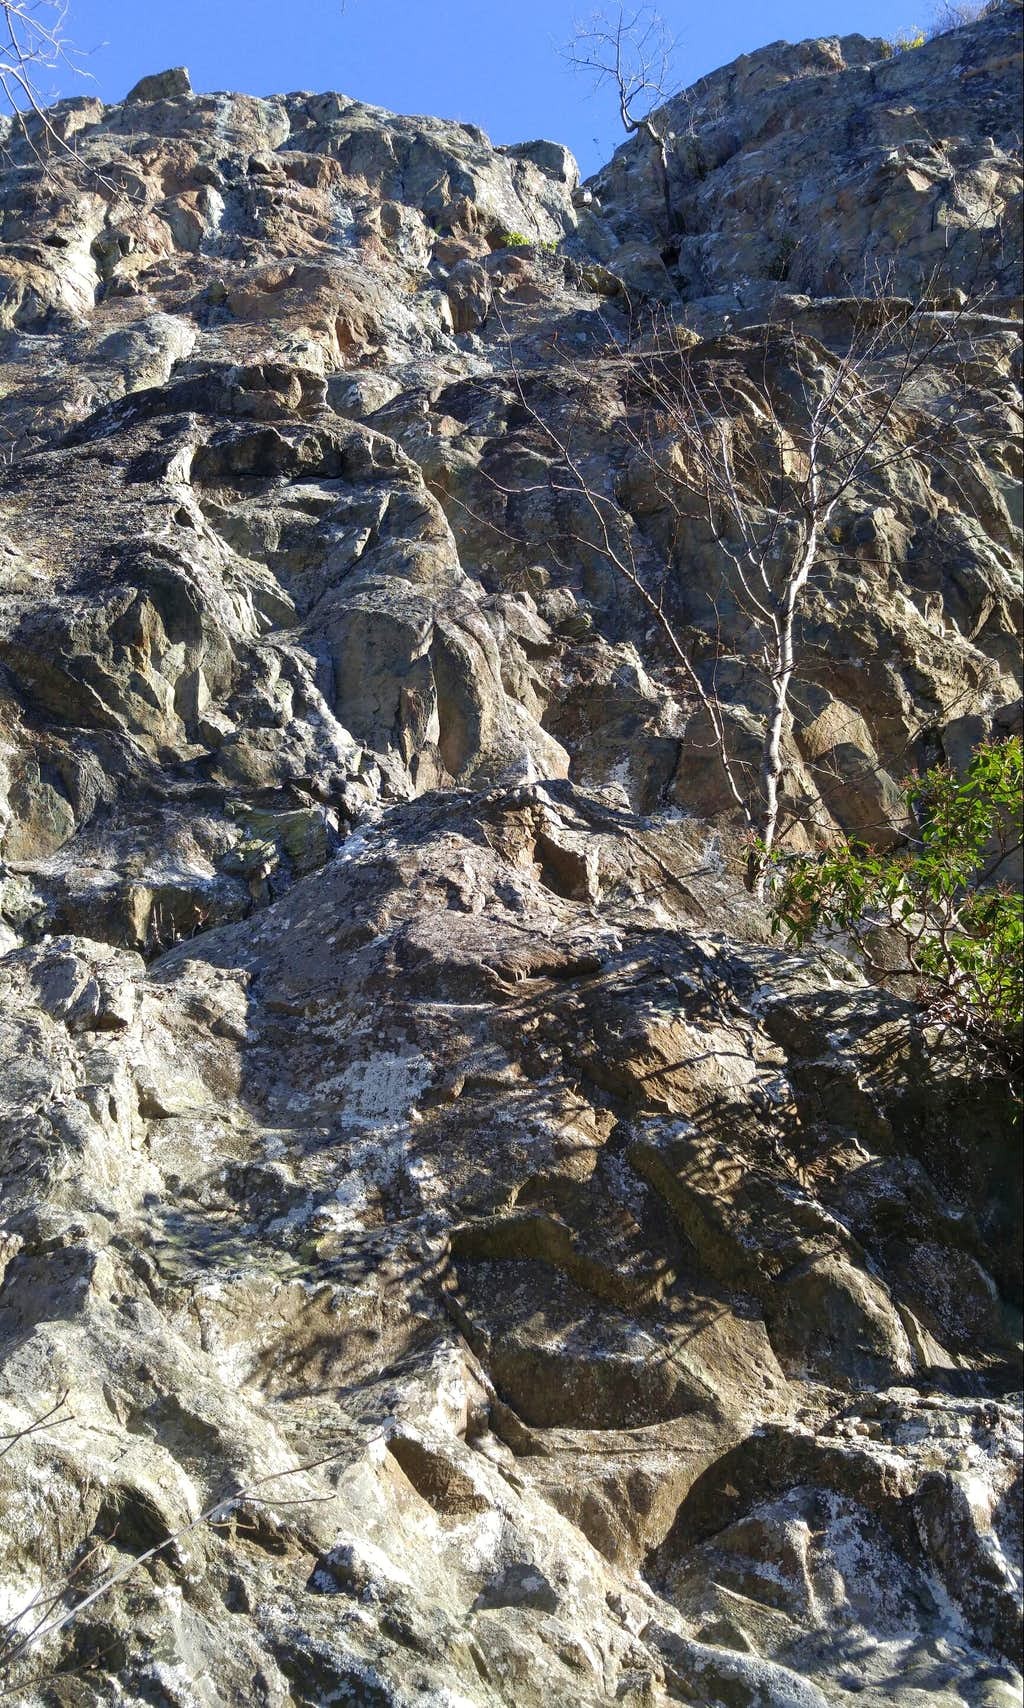 Cliffs at Raven's Roost